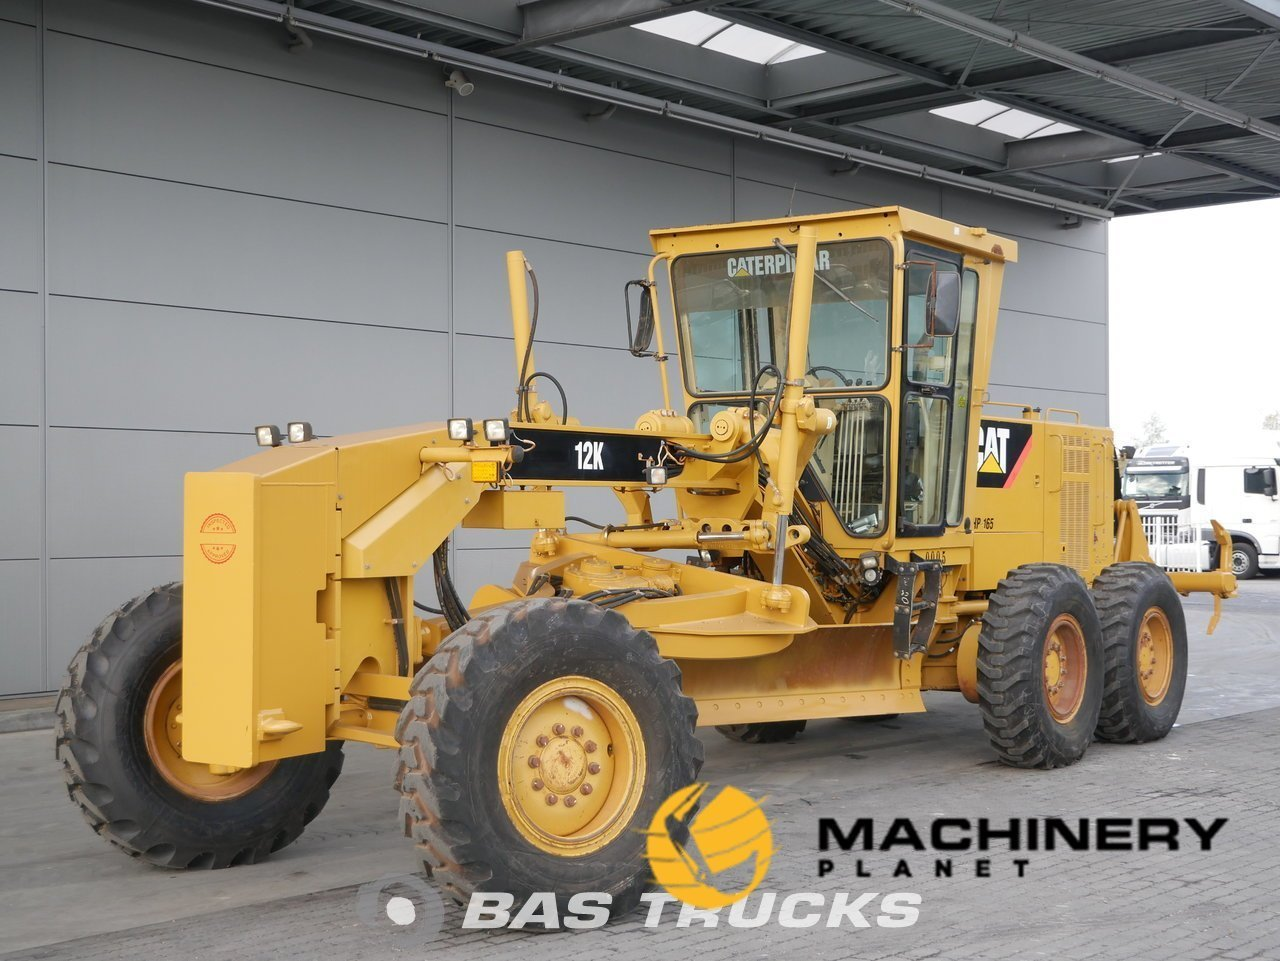 Used-Construction-equipment-Caterpillar-12K-6X4-2011_138119_1-1553942625055_5c9f48610d722-1.jpg